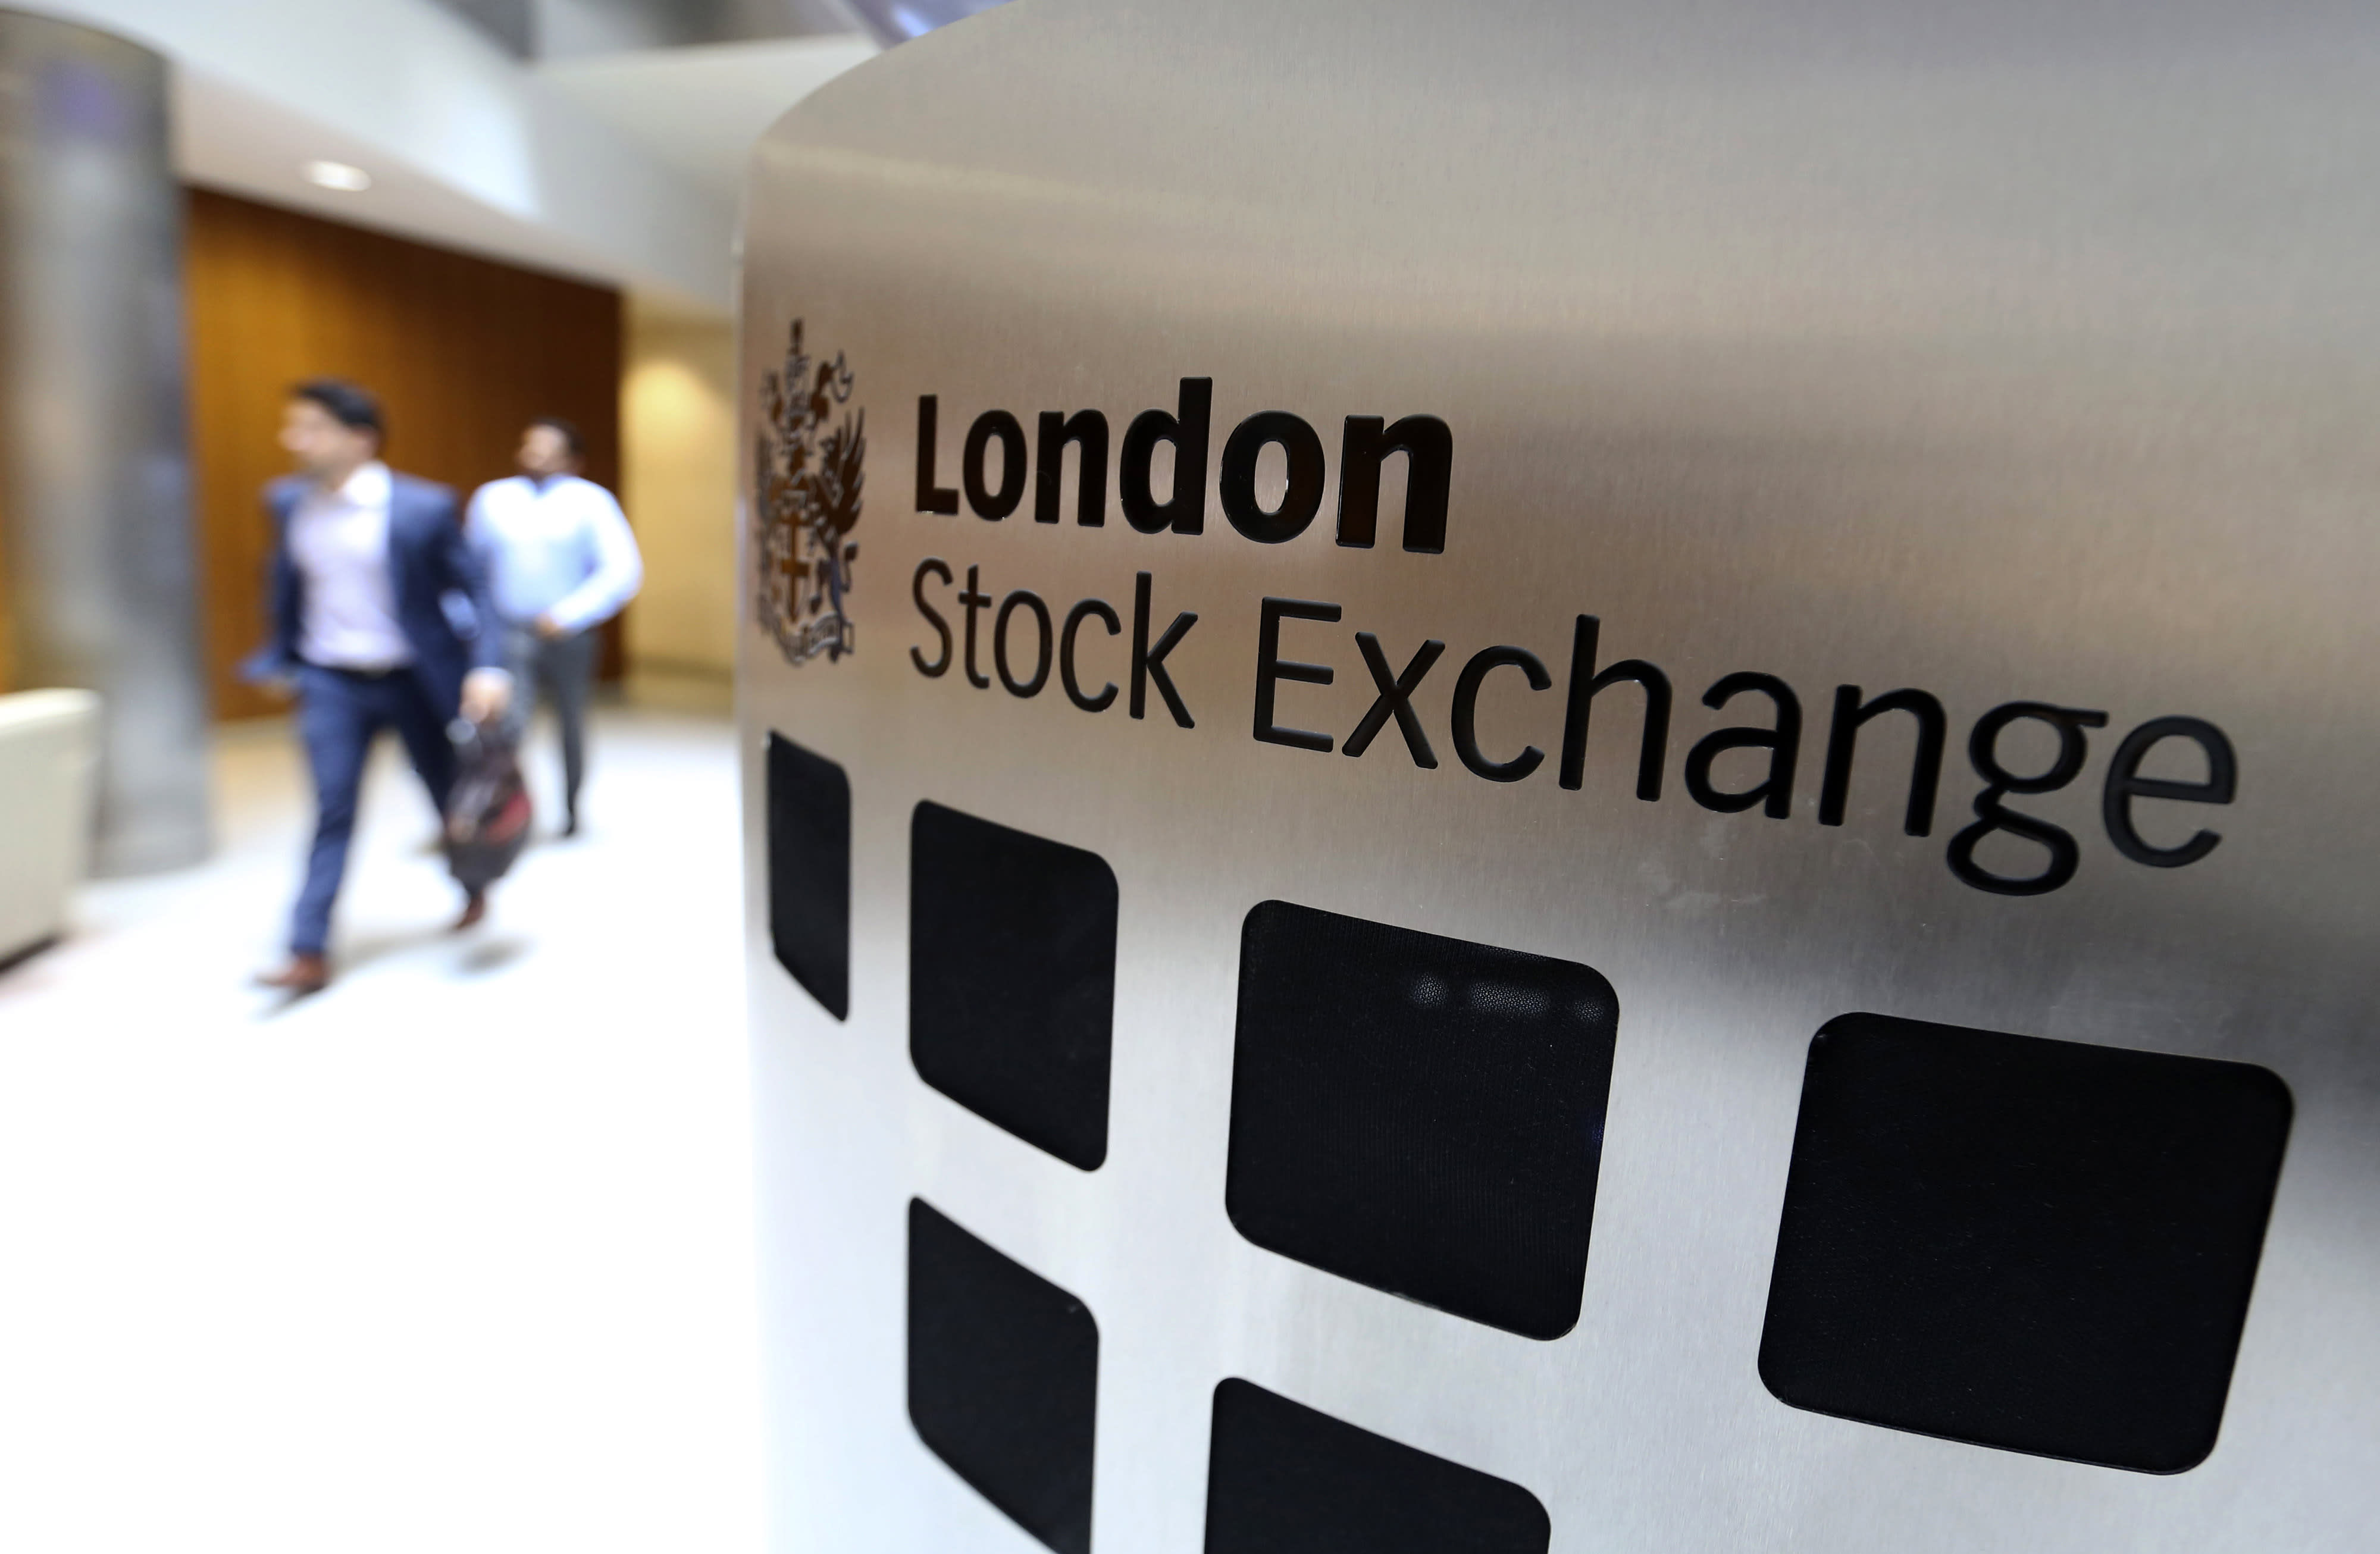 London Stock Exchange agrees to buy Refinitiv in $27 billion deal